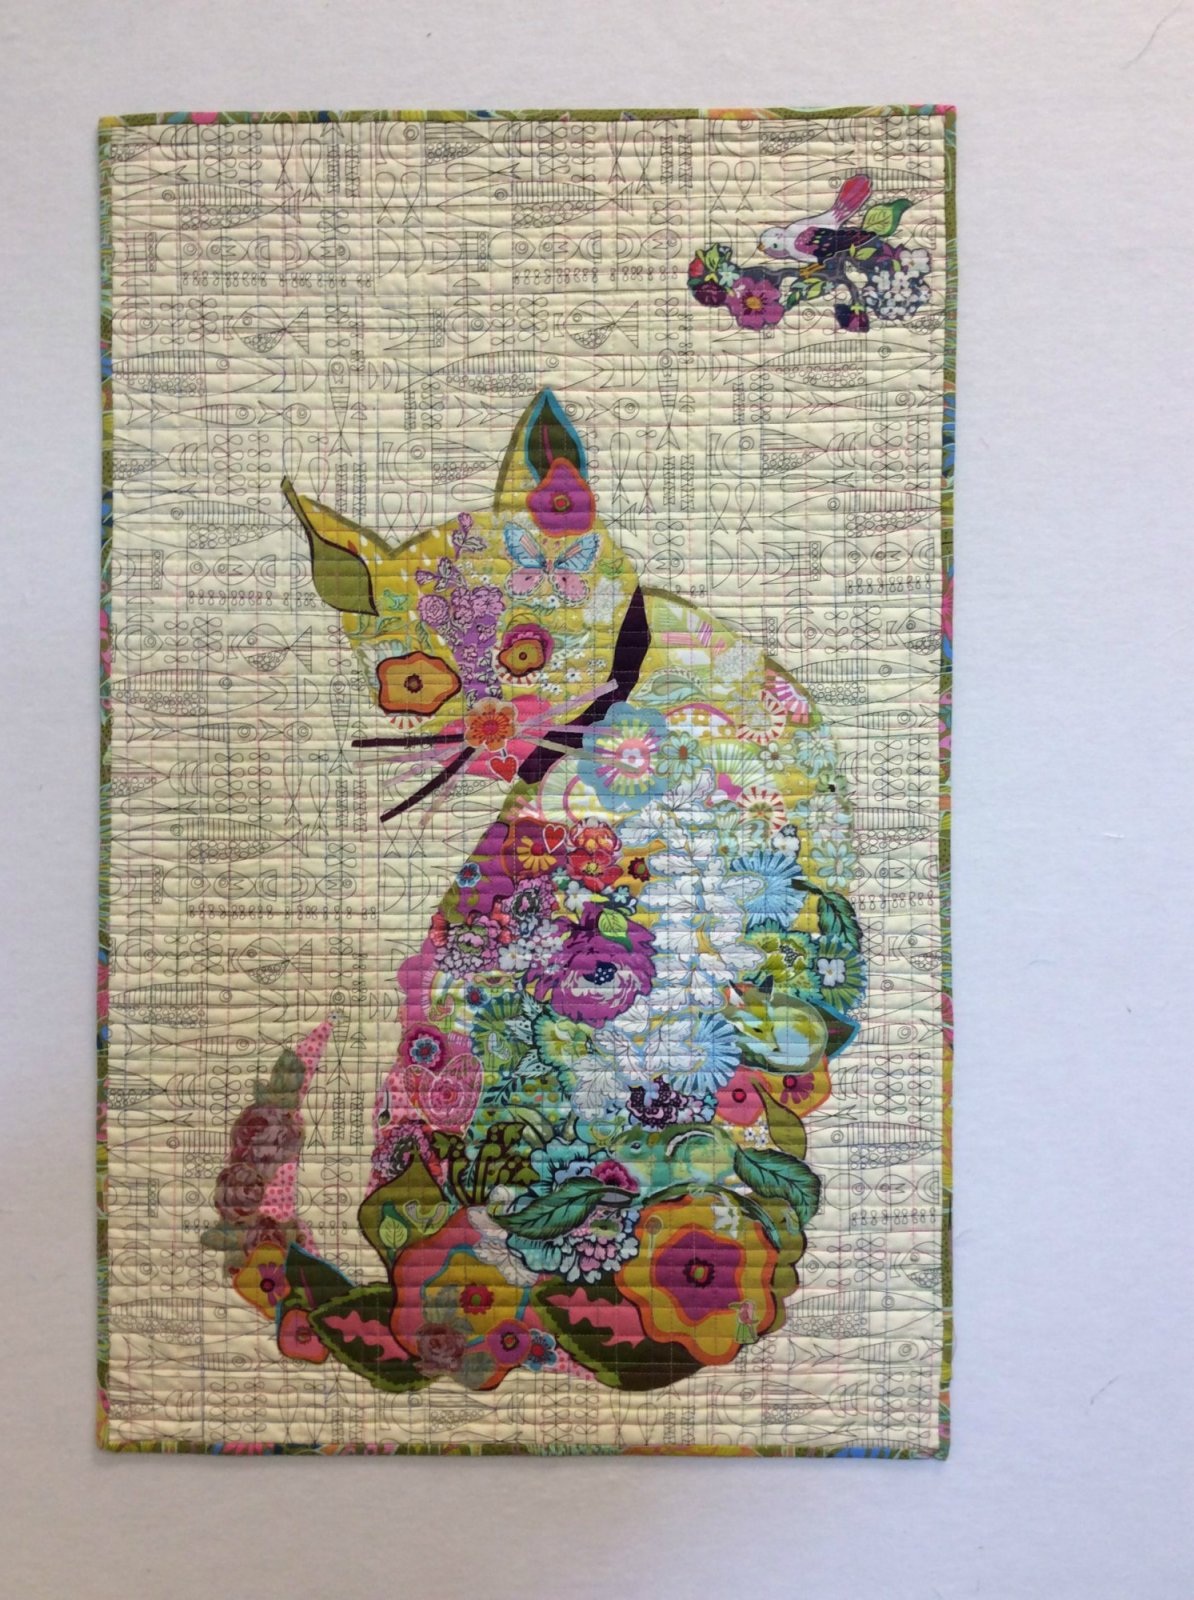 Purrfect Cat Collage Quilt Kit By Laura Heine